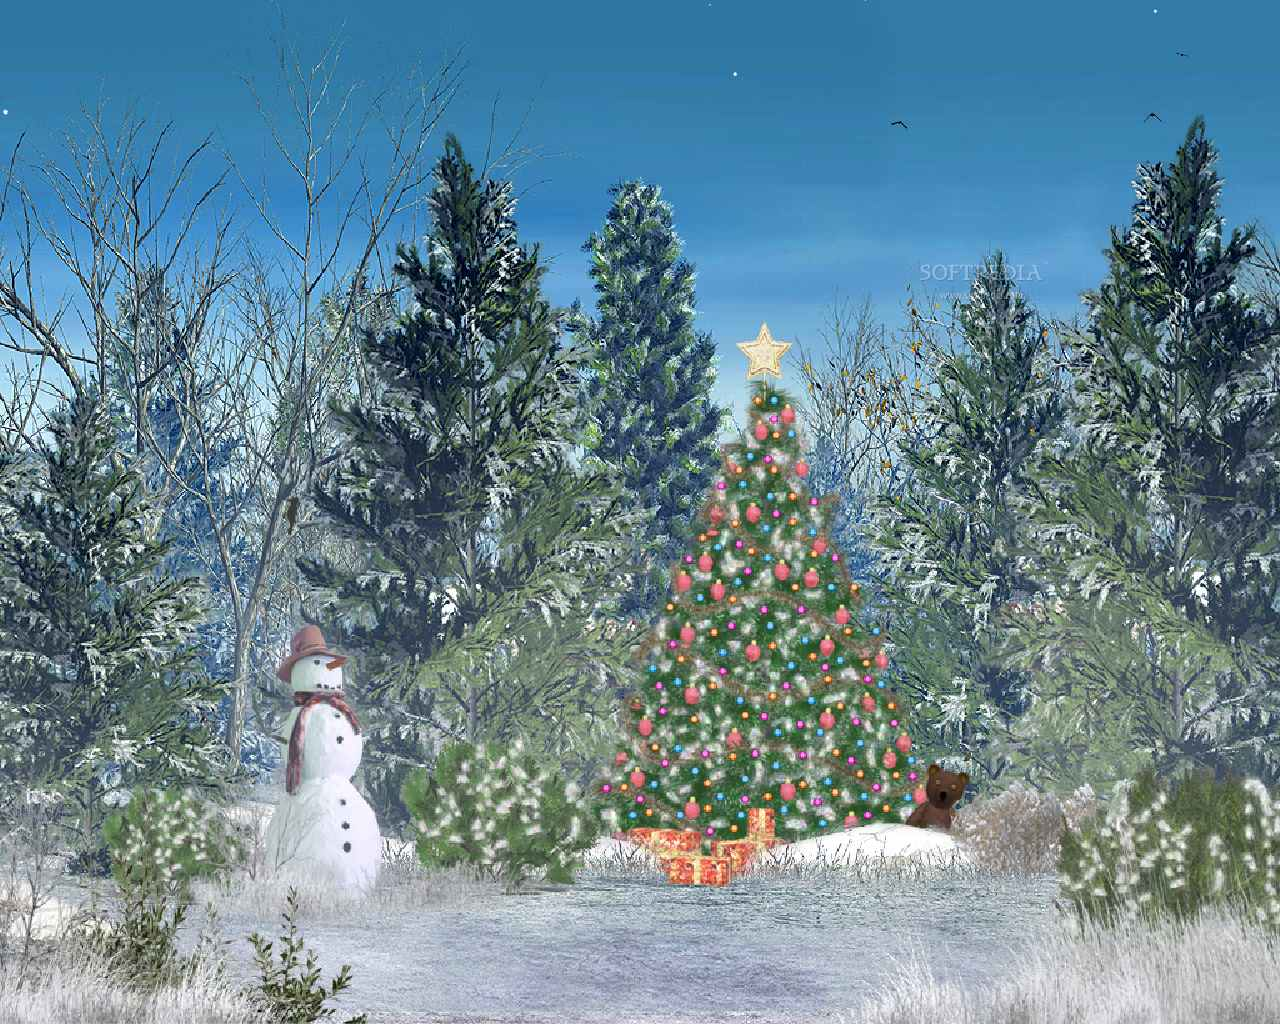 http://www.softpedia.com/screenshots/Christmas-Forest-Animated-Screensaver_1.jpg